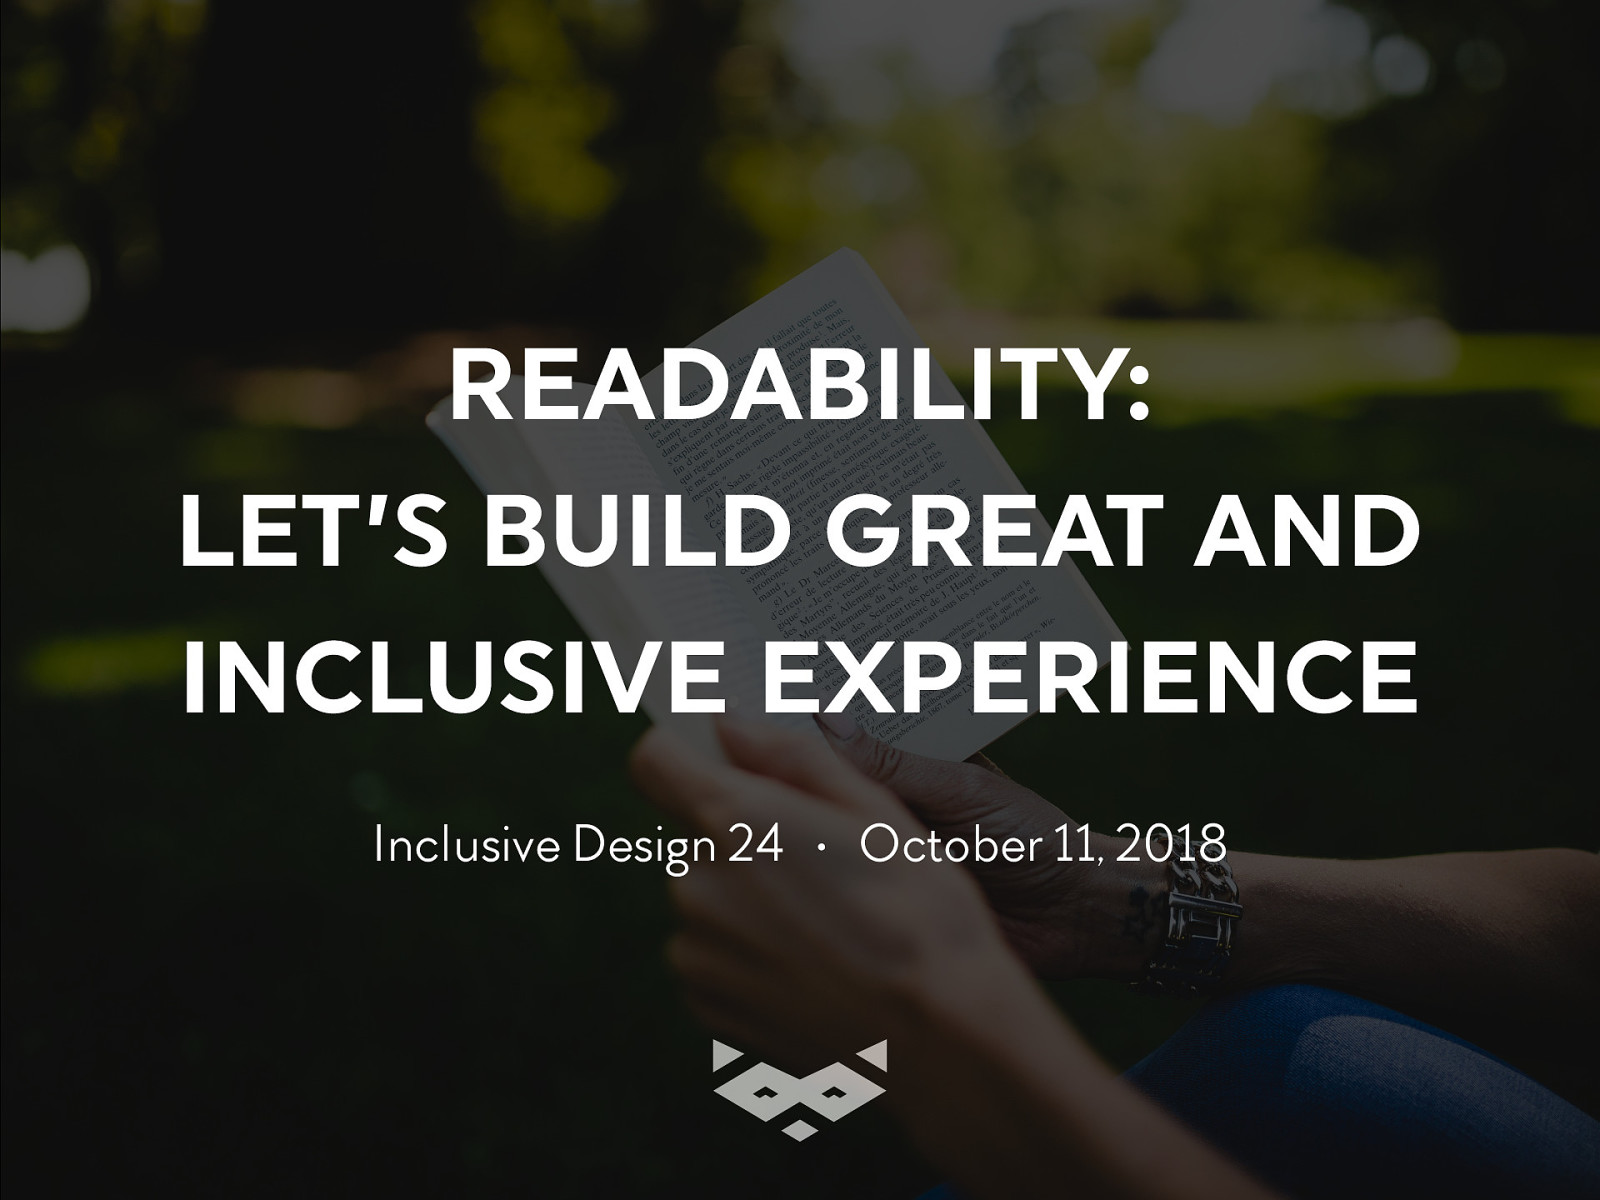 Readability & Web: Let's build great inclusive projects